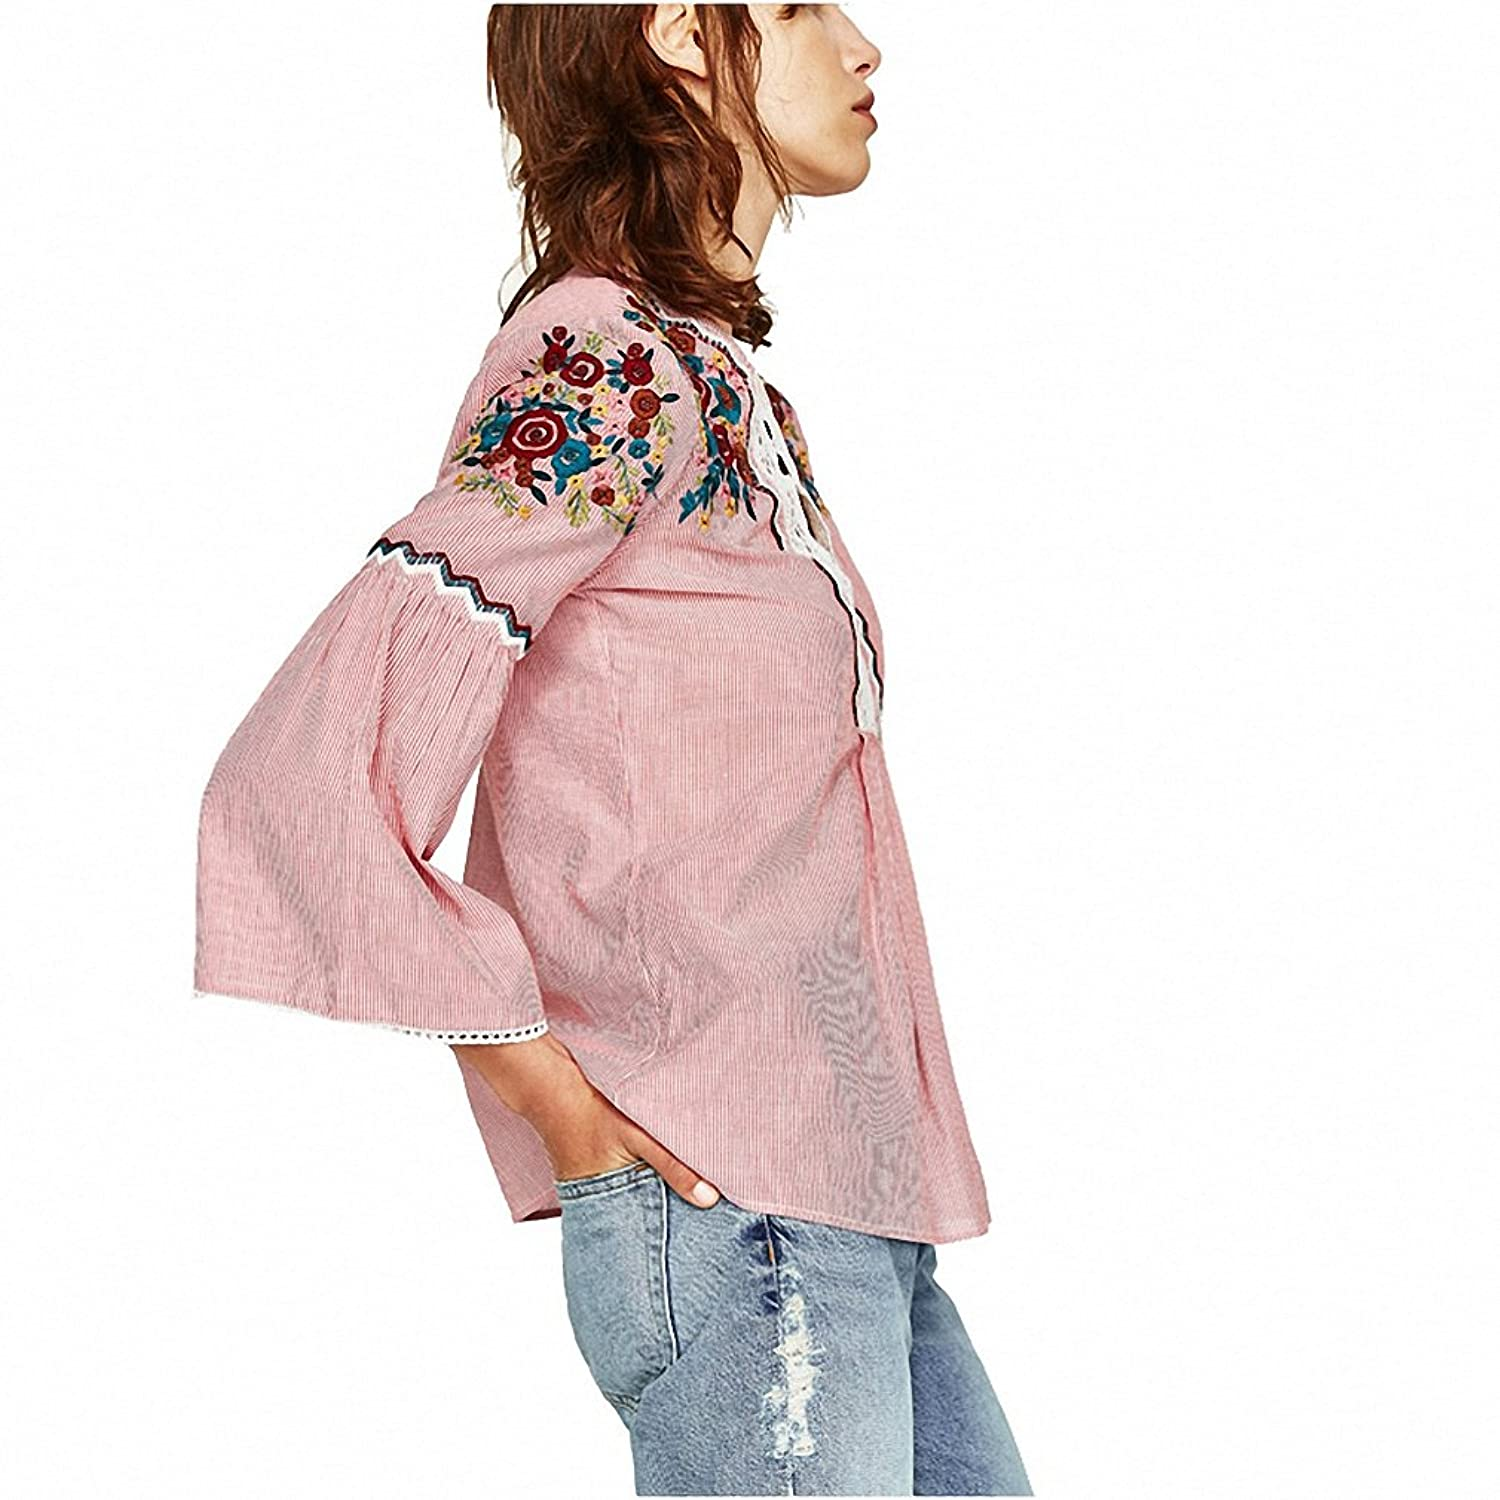 Women Shirts Sommer Blouse NEW Spring New Top Blouse with Sleeve Embroidery O-neck Striped Shirts Casual femininas blusas at Amazon Womens Clothing store: